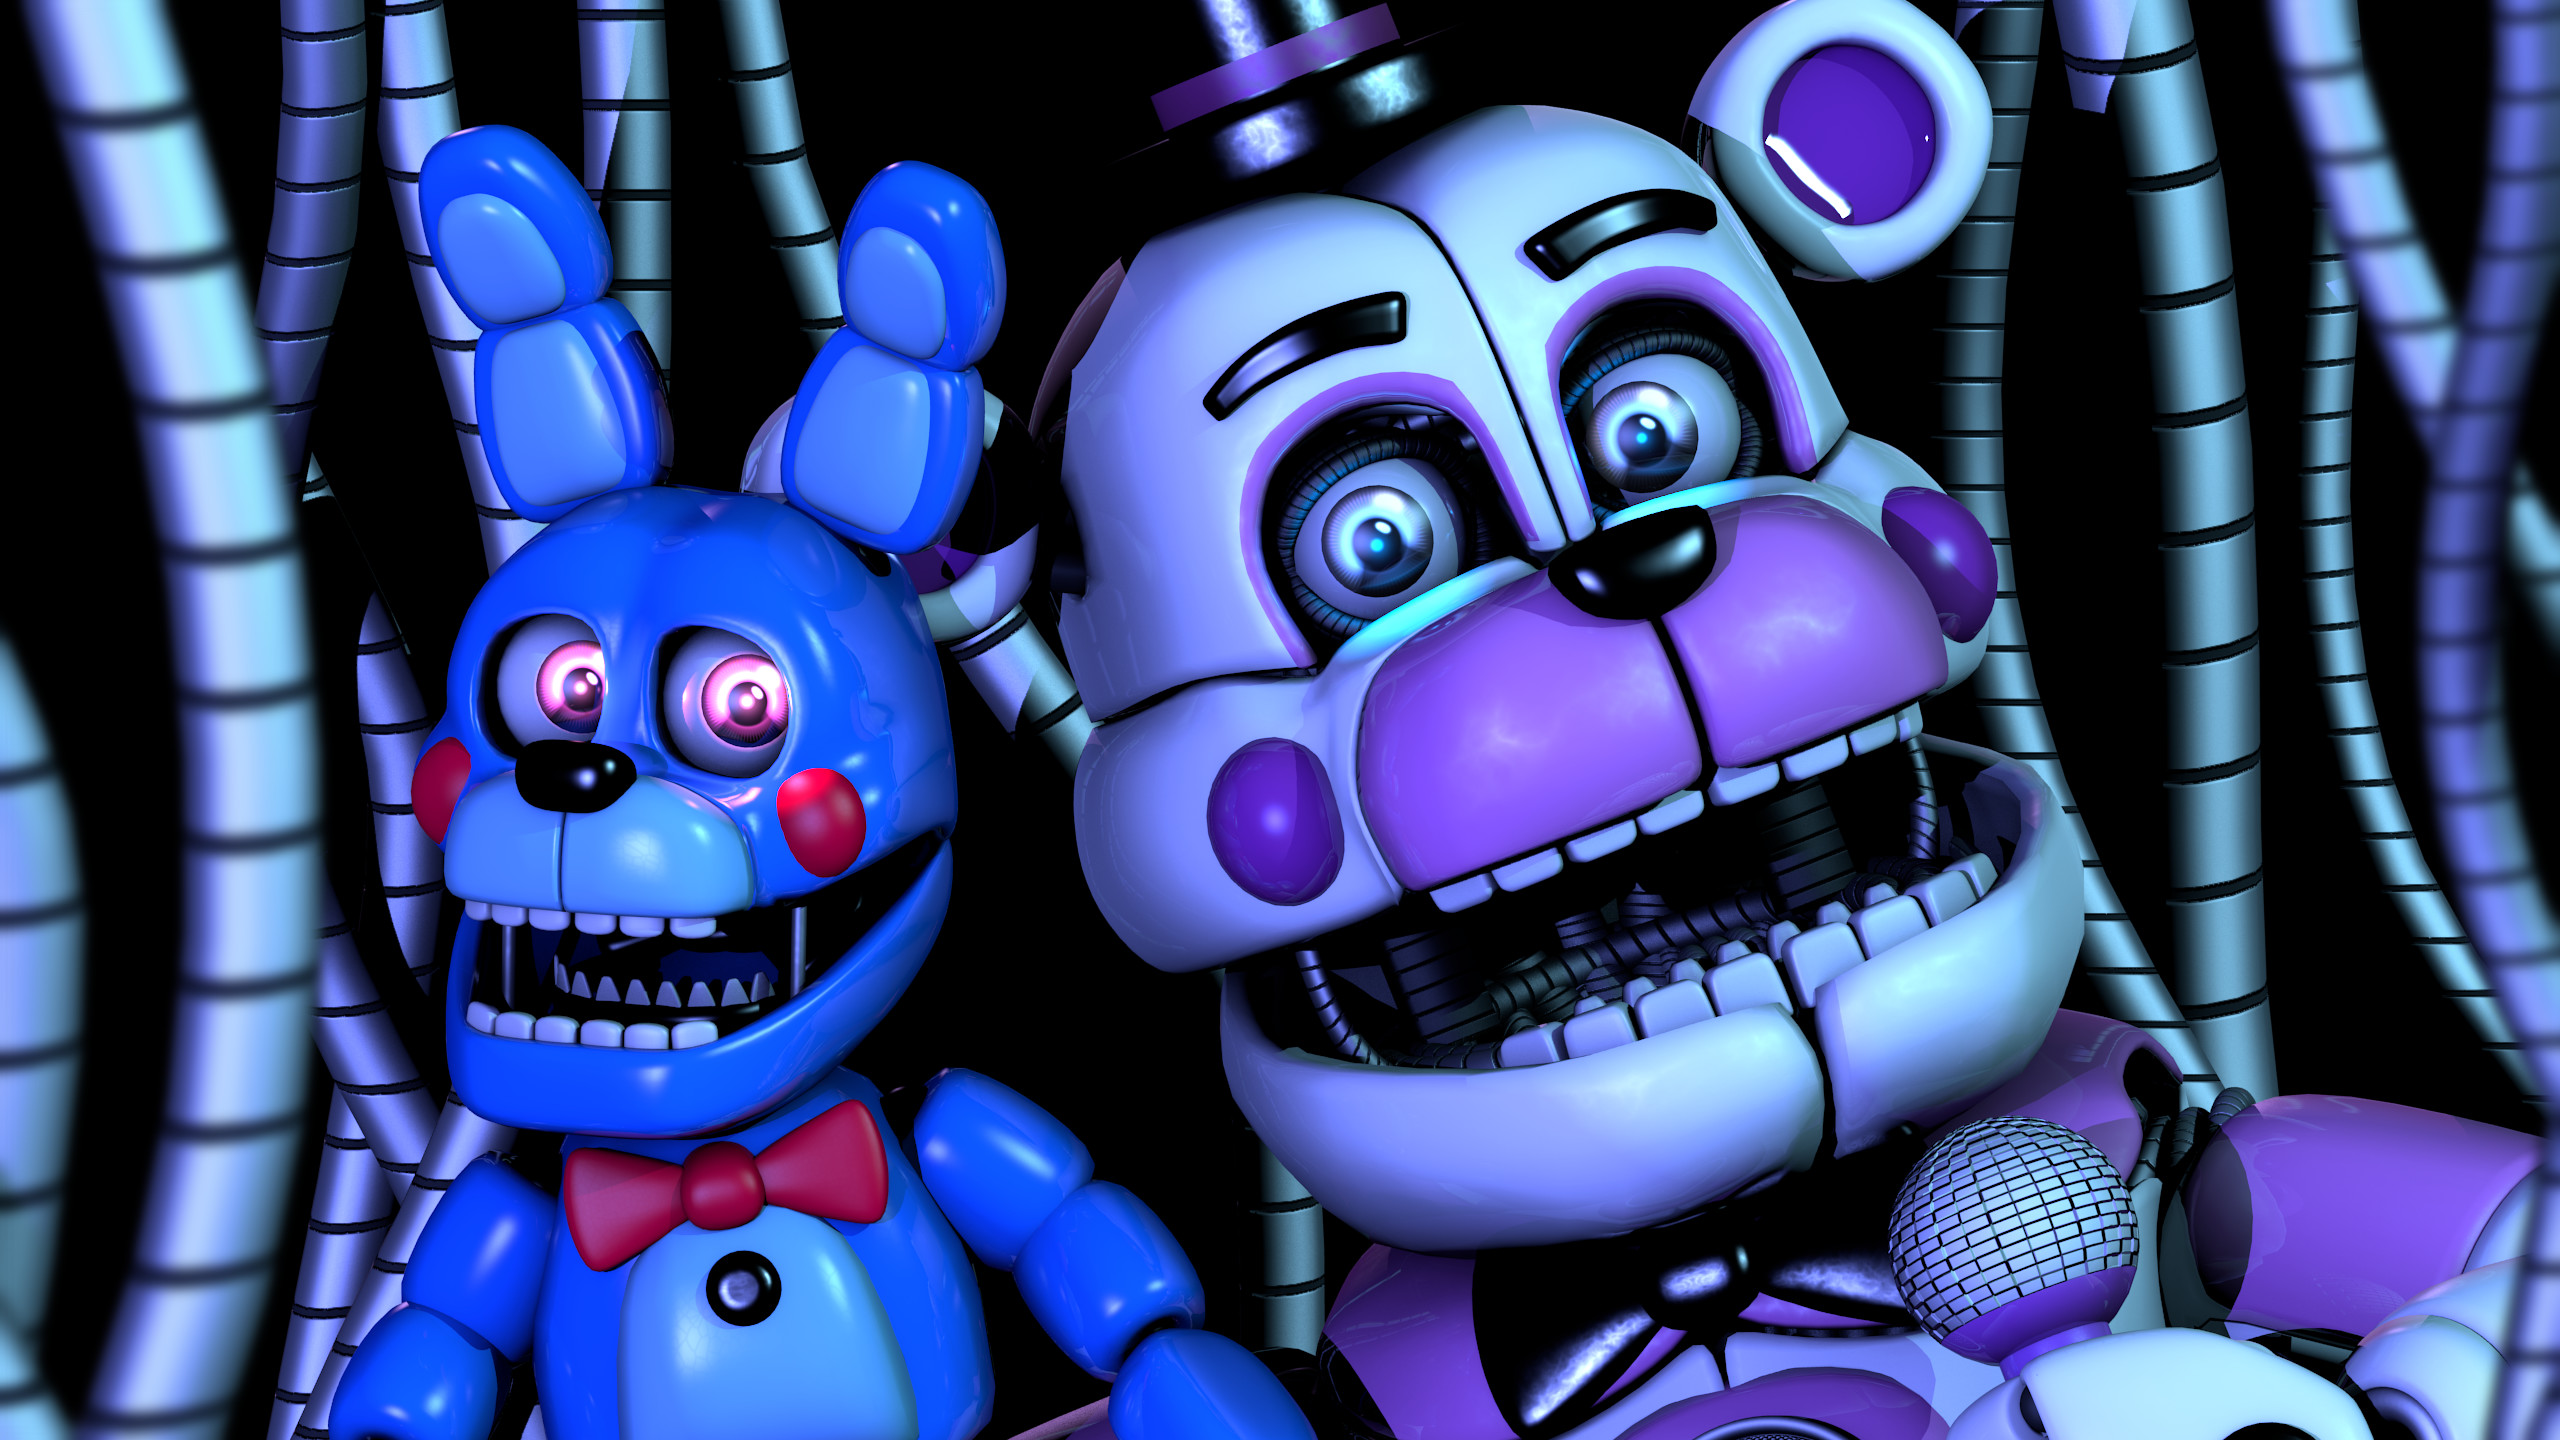 Five Nights at Freddys Wallpapers (81+ pictures)